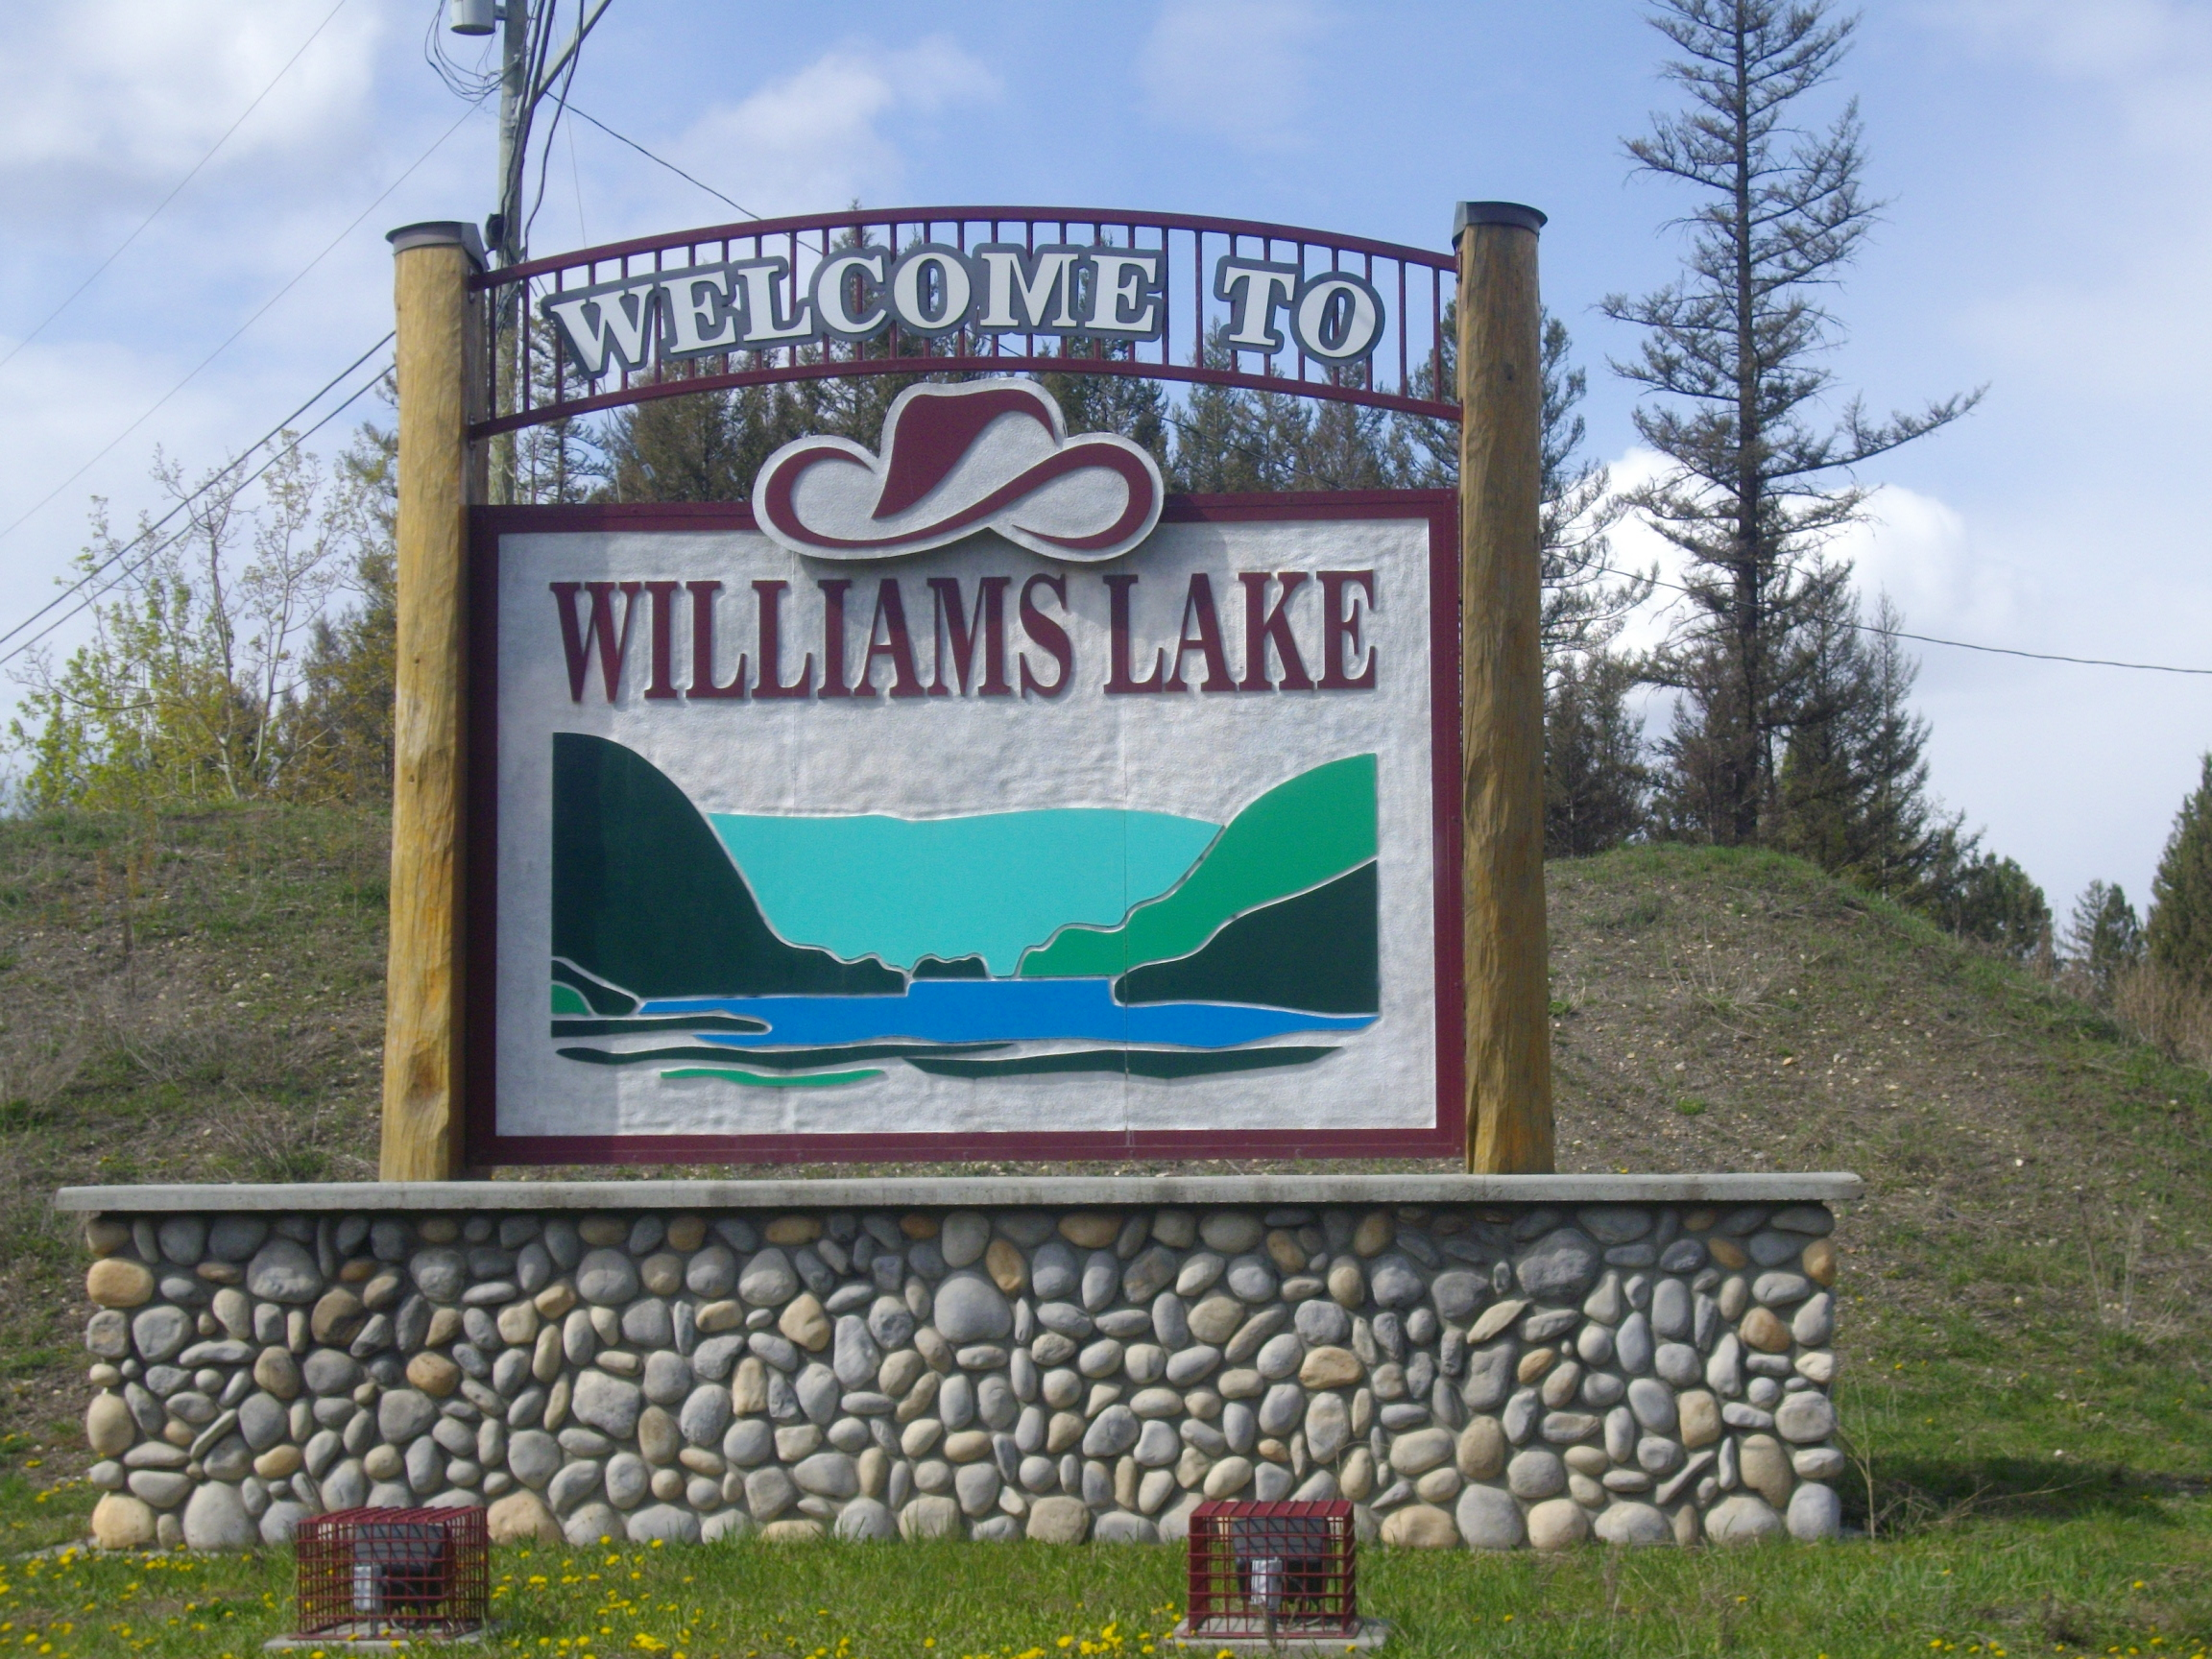 Williams Lake, British Columbia. (Photo courtesy of Andybremner2012/Wikipedia)